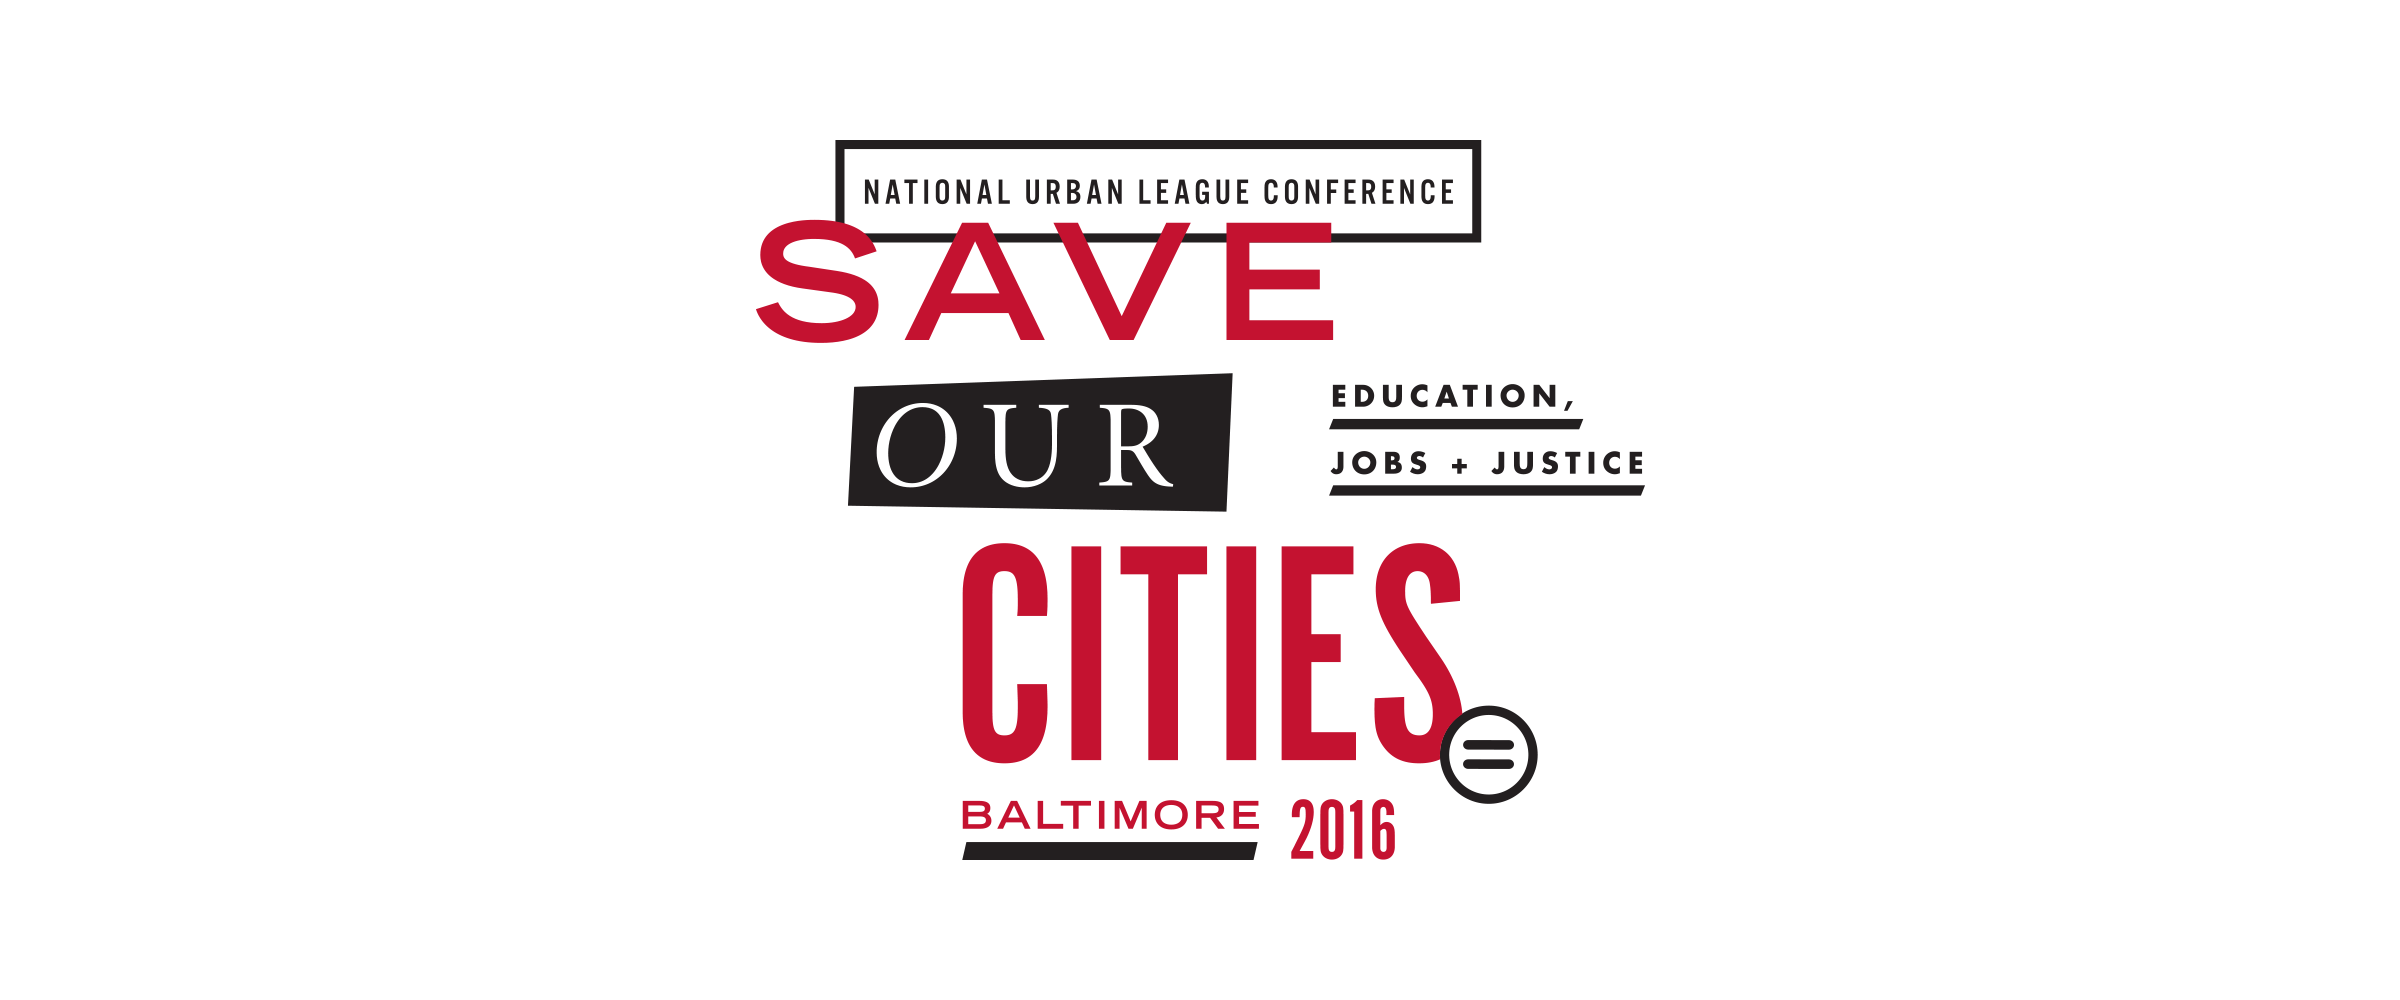 Nul Conference Baltimore Logo